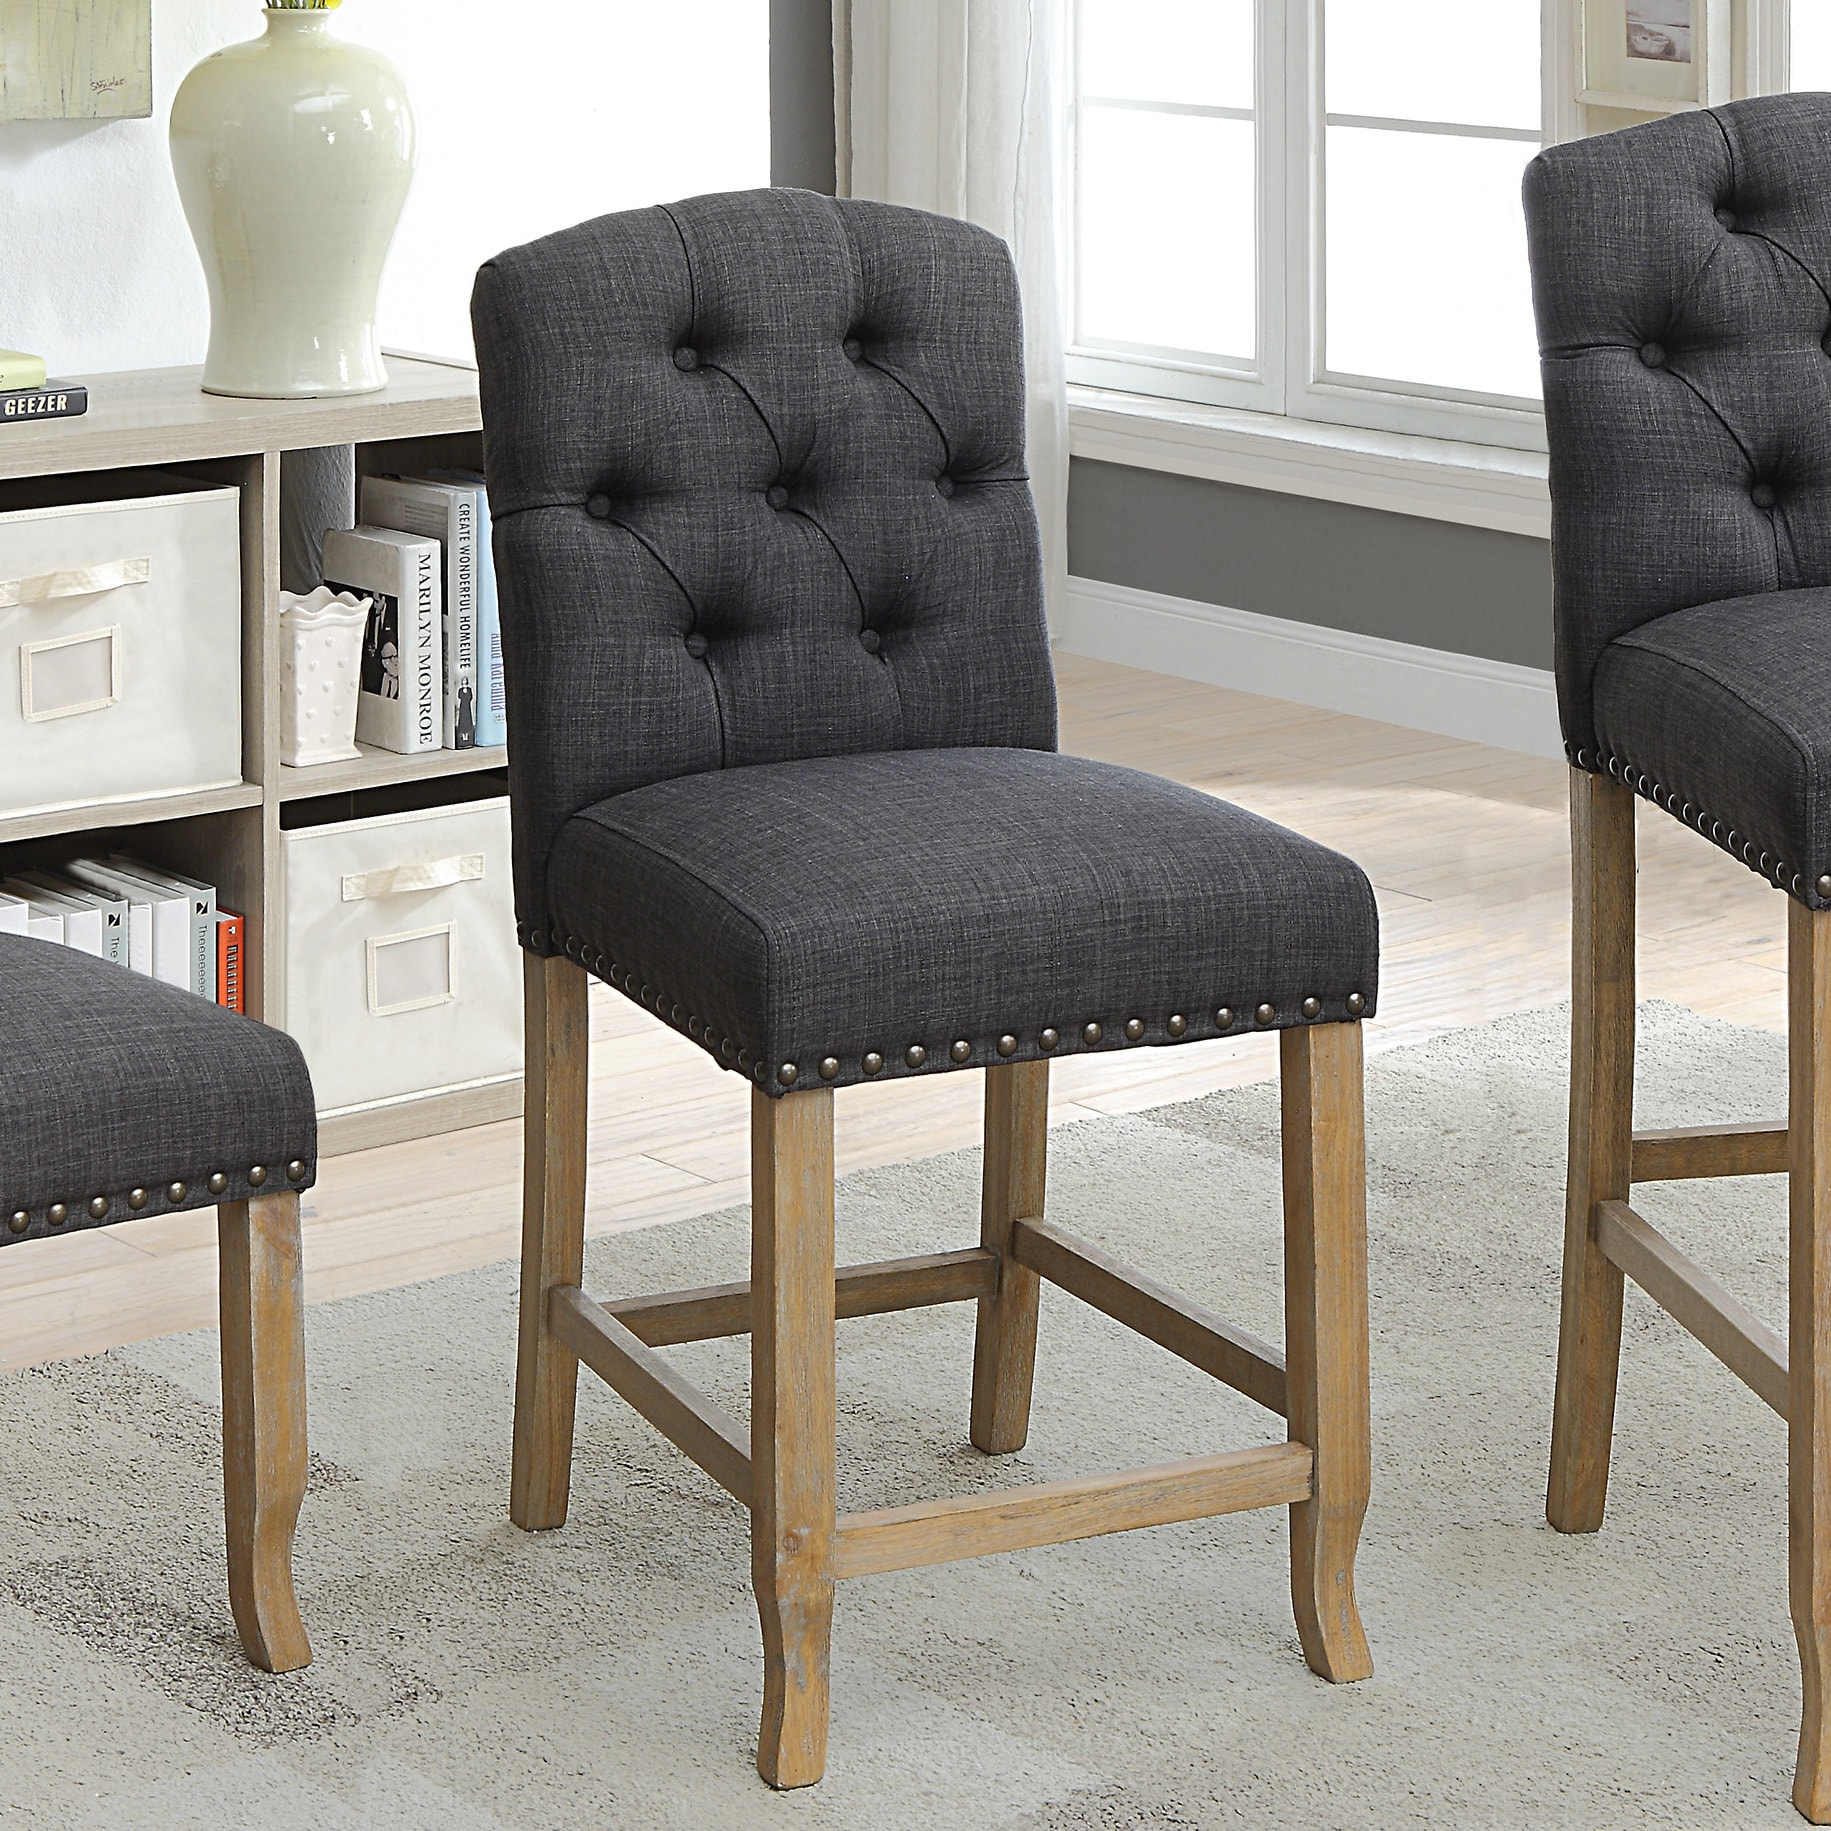 Furniture Of America Matheson Rustic Tufted Counter Height Chairs (Set Of  2)   Free Shipping Today   Overstock   26380044